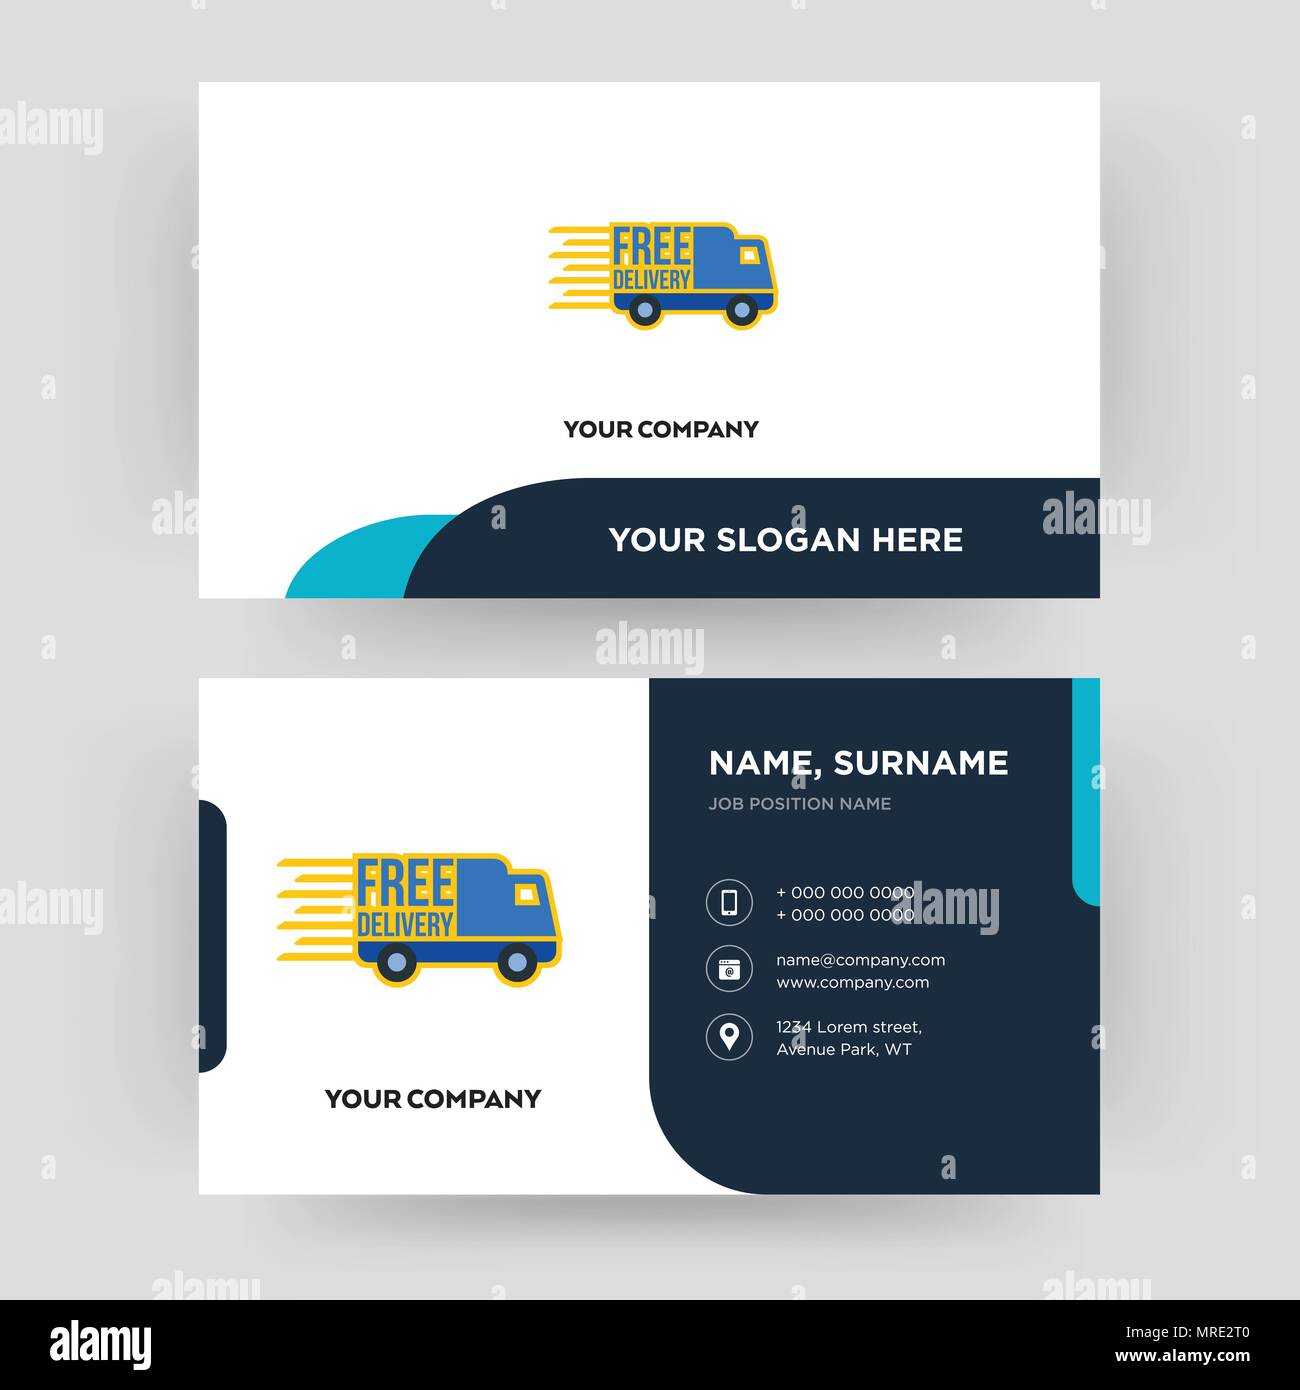 Free delivery business card design template visiting for your free delivery business card design template visiting for your company modern creative and clean identity card vector wajeb Images